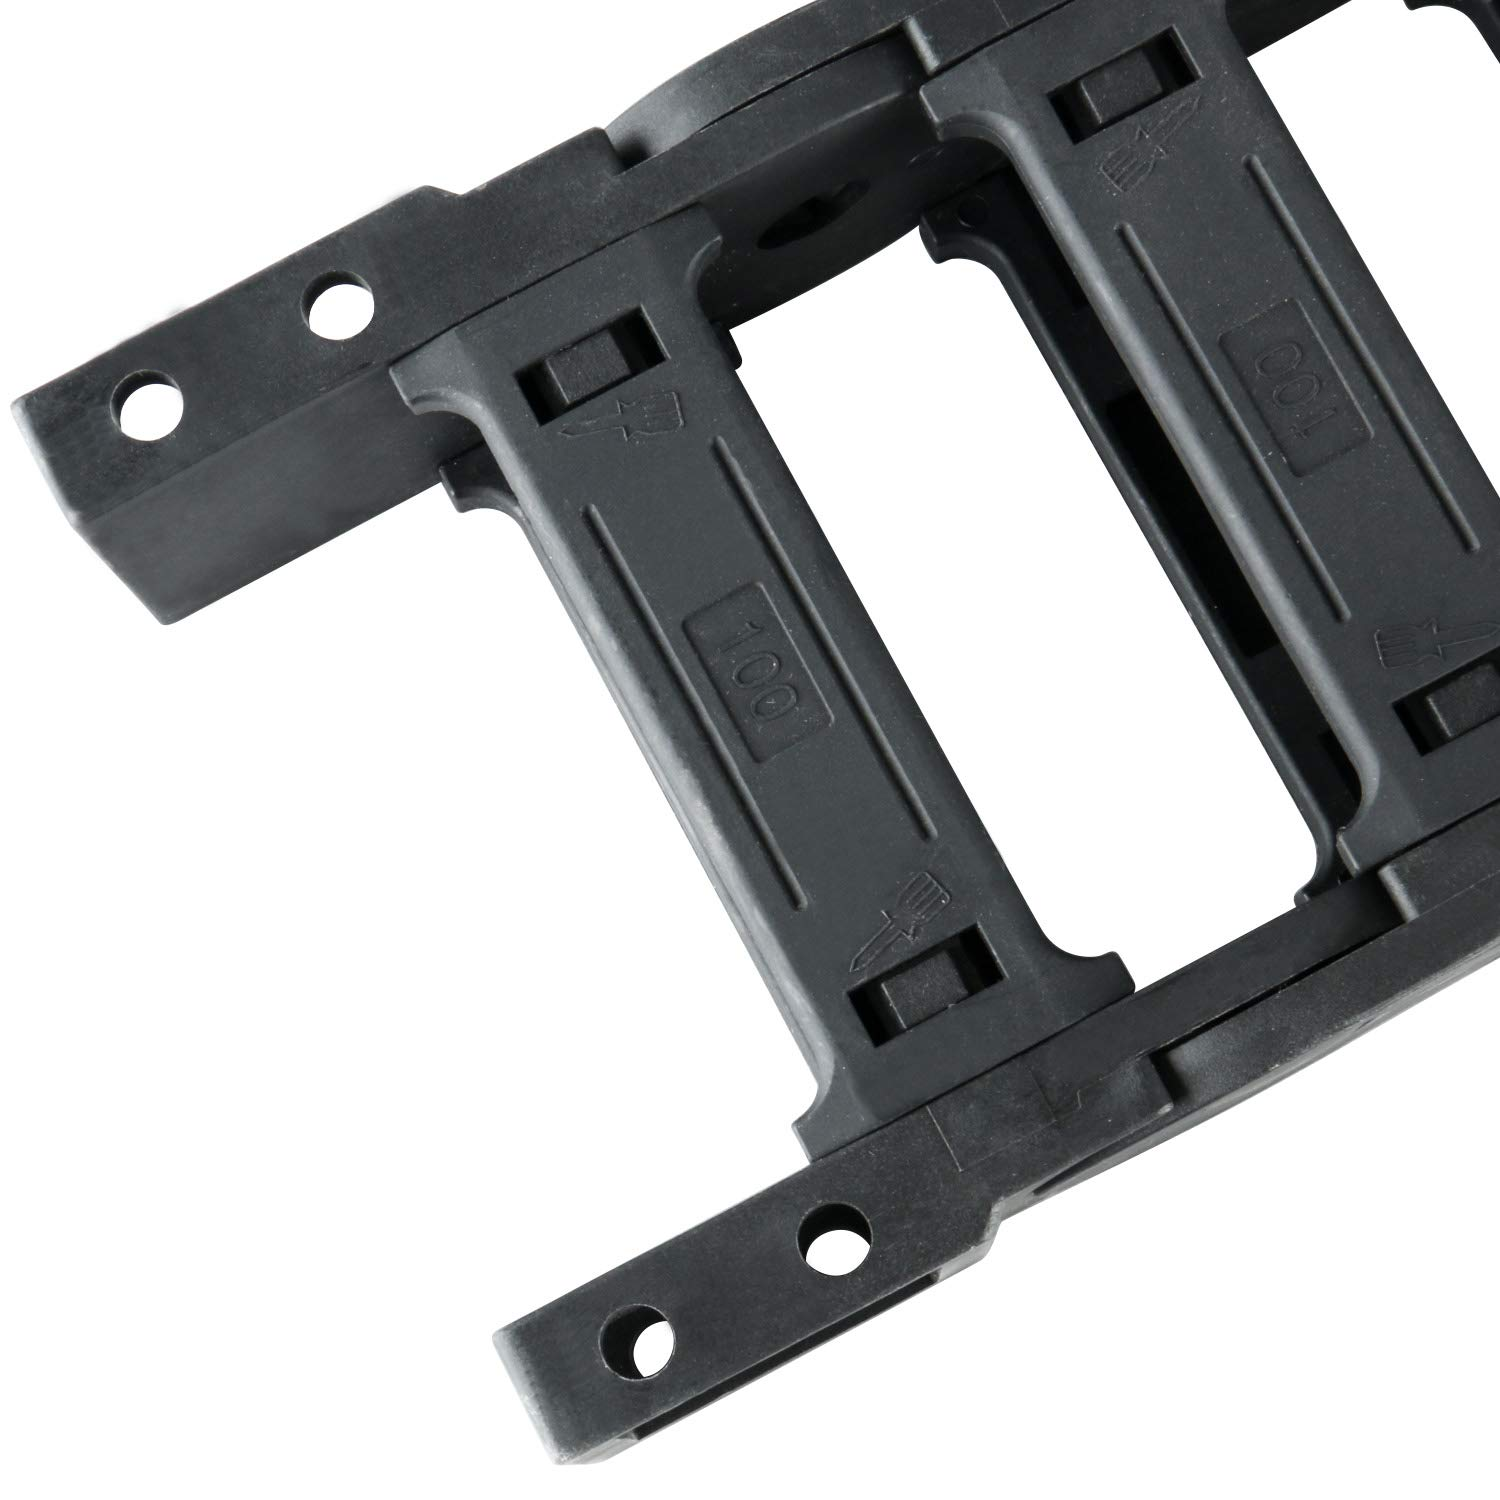 Plastic Drag Chain Cable Carrier with End Connectors 35 x 60mm L1040mm for Electrical CNC Router Machines